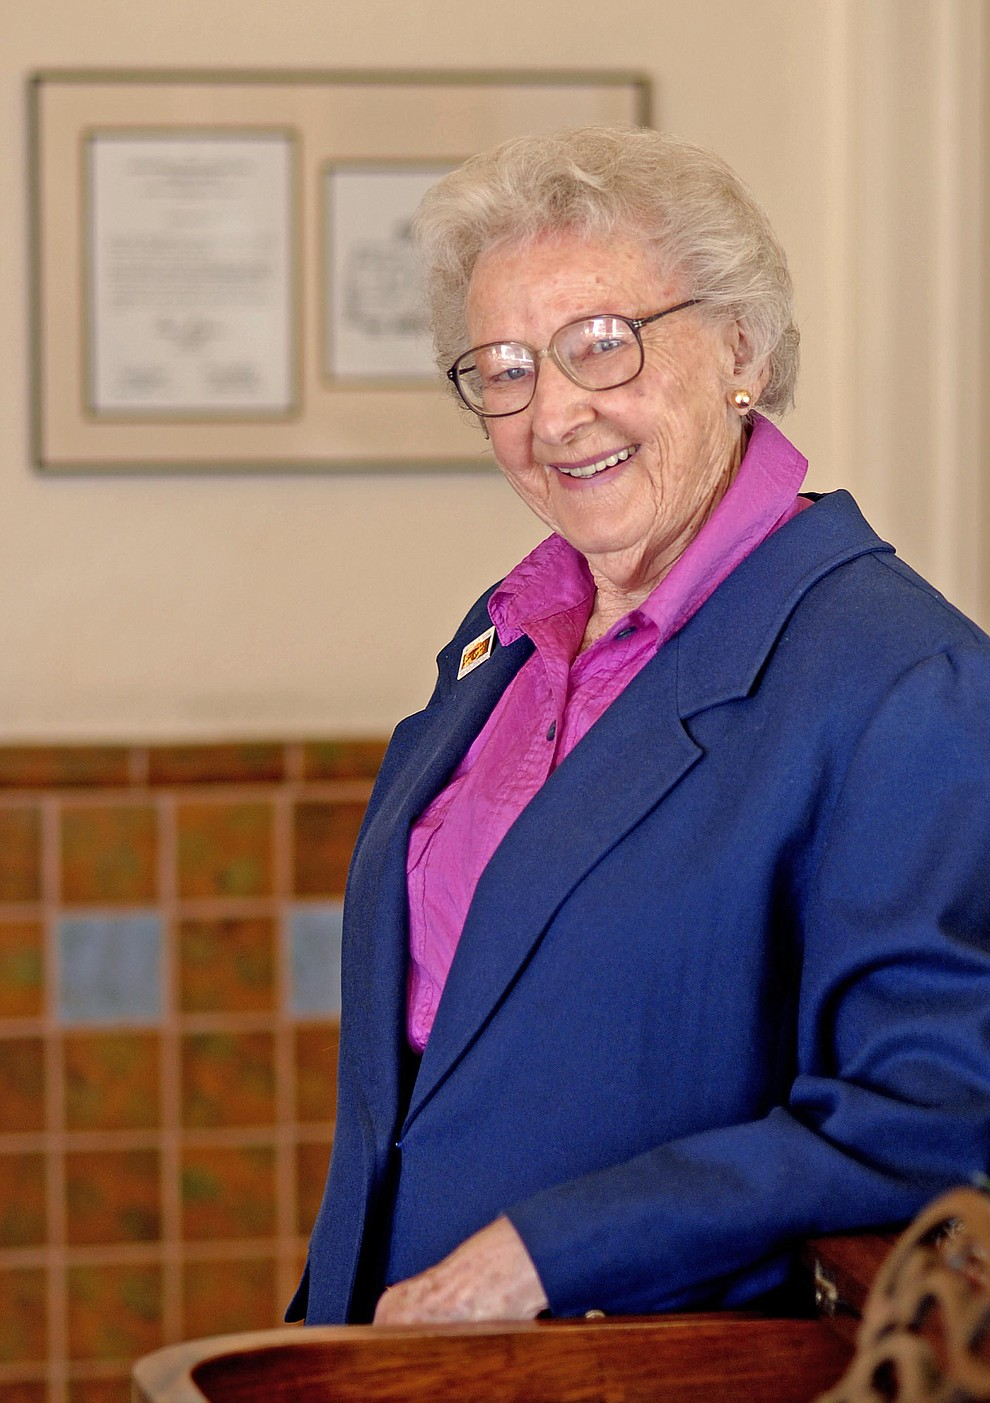 Elisabeth Ruffner, a longtime Prescott Historian is photographed at the Hassayampa Hotel Feb. 28, 2007.  A Governor's proclamation on the preservation of the Hassayampa Hotel, hangs behind Ruffner in which she was instrumental in saving. (Courier file photo).